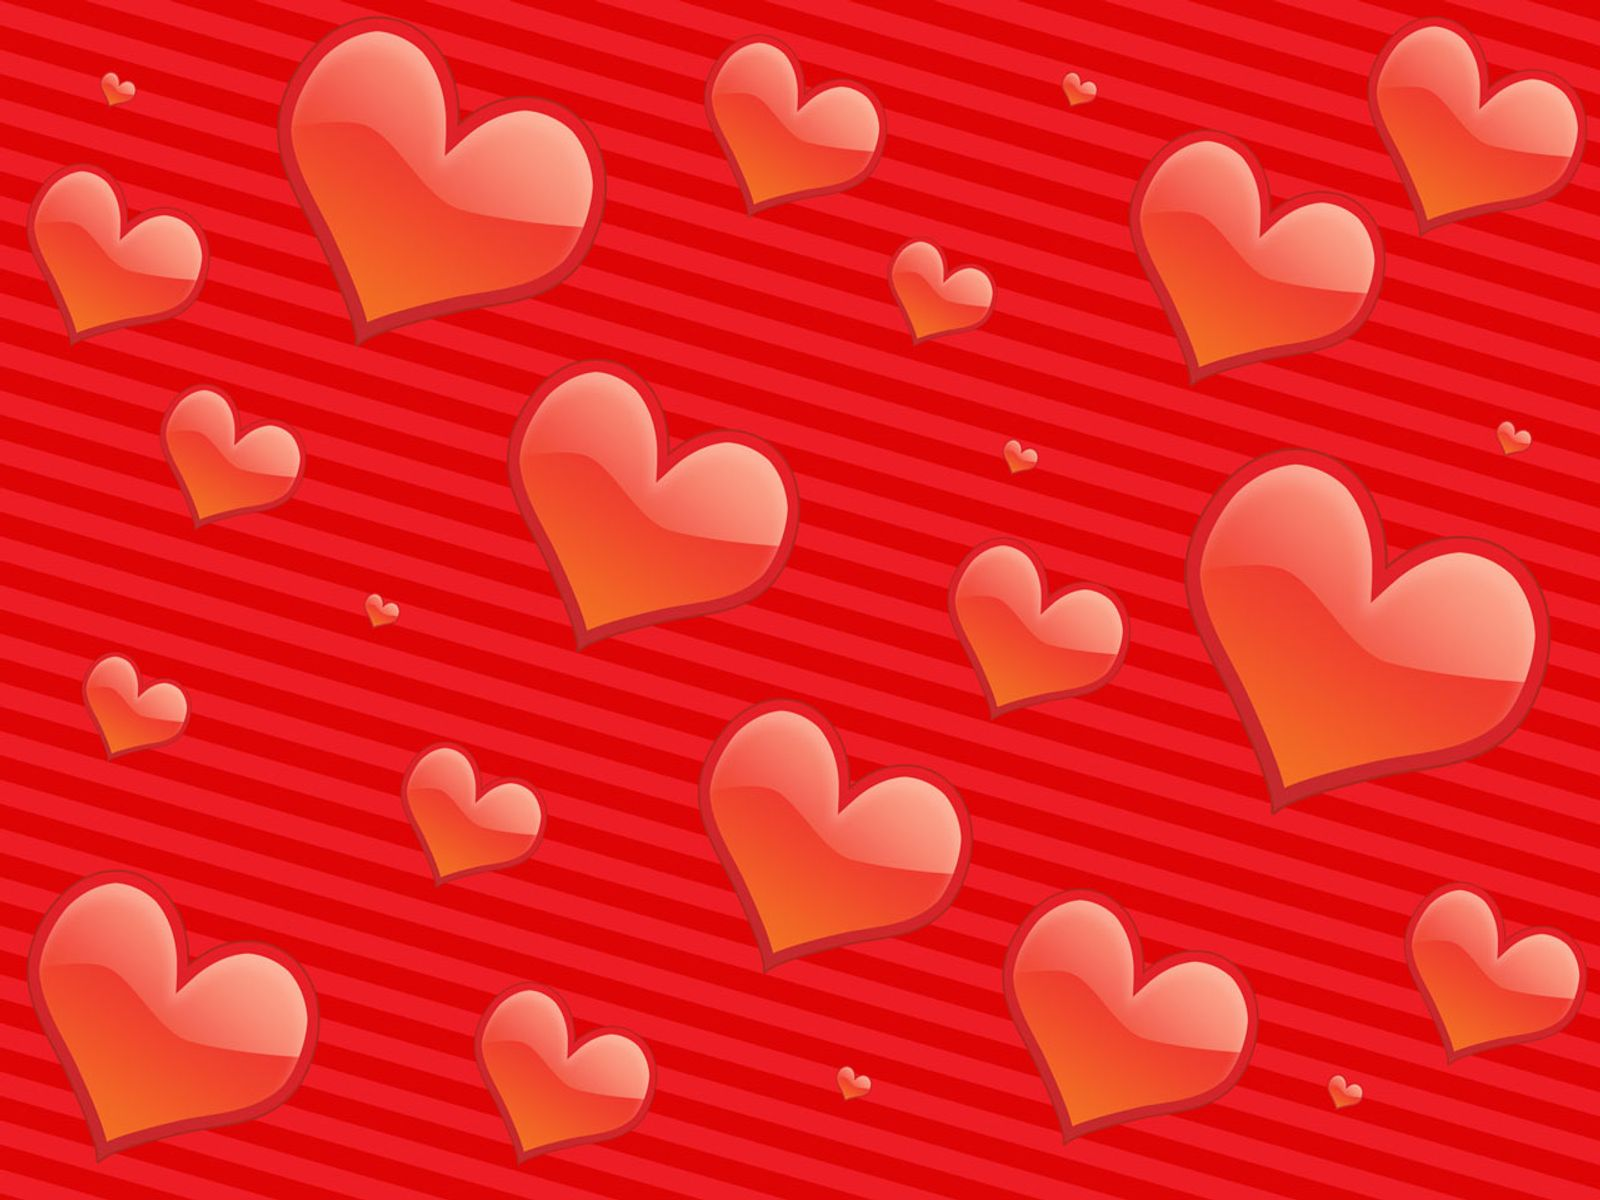 Hearts Red Free Valentines Day Background Wallpaper Http Wall Ws 454543 Hearts Red Free Valen Heart Wallpaper Valentines Wallpaper Free Valentine Wallpaper